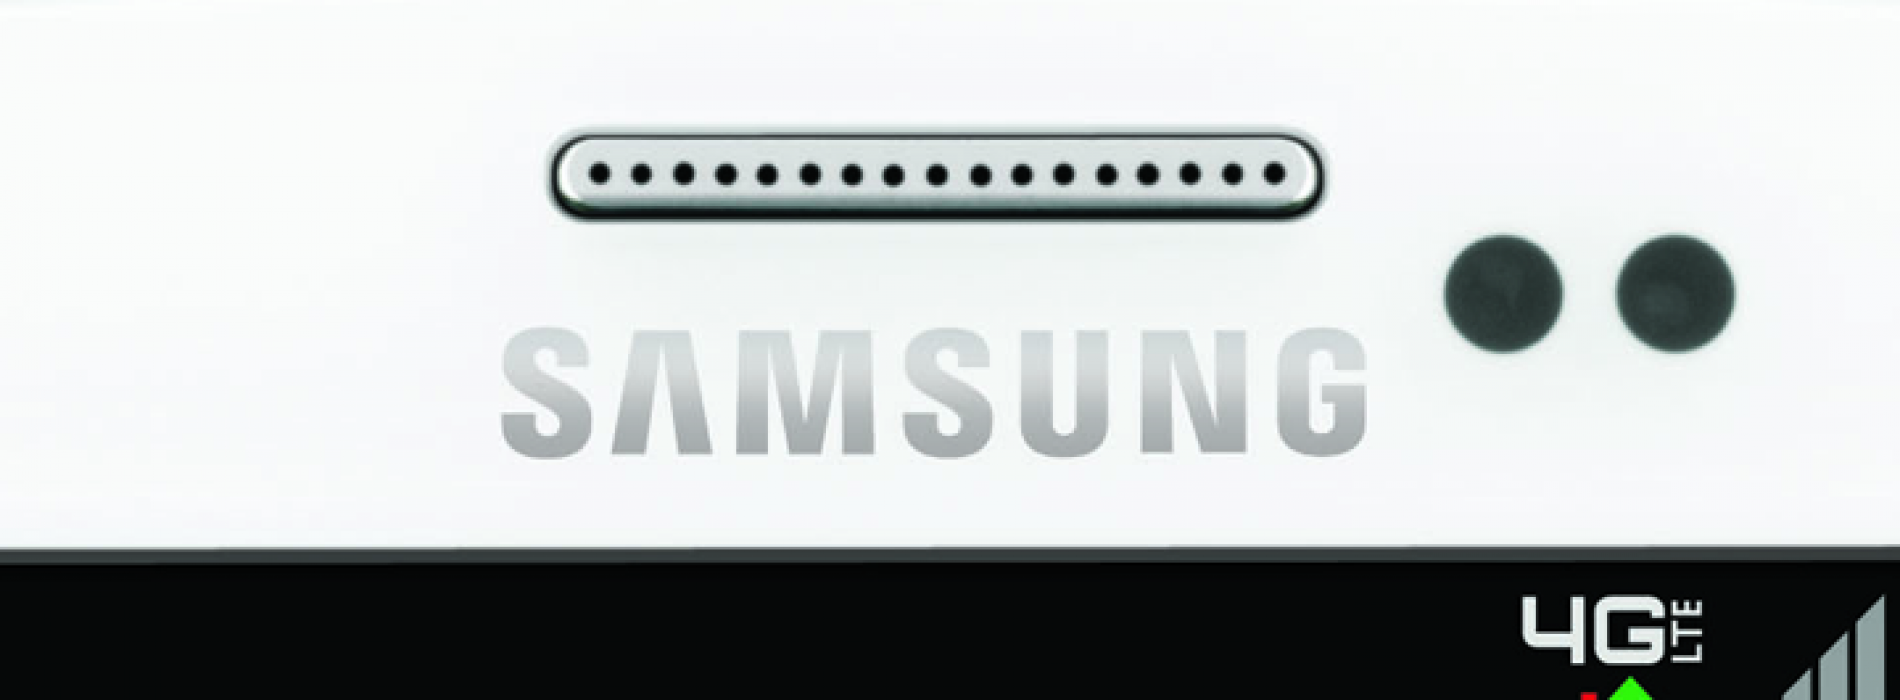 Samsung striving for nearly 400 million smartphones in 2013